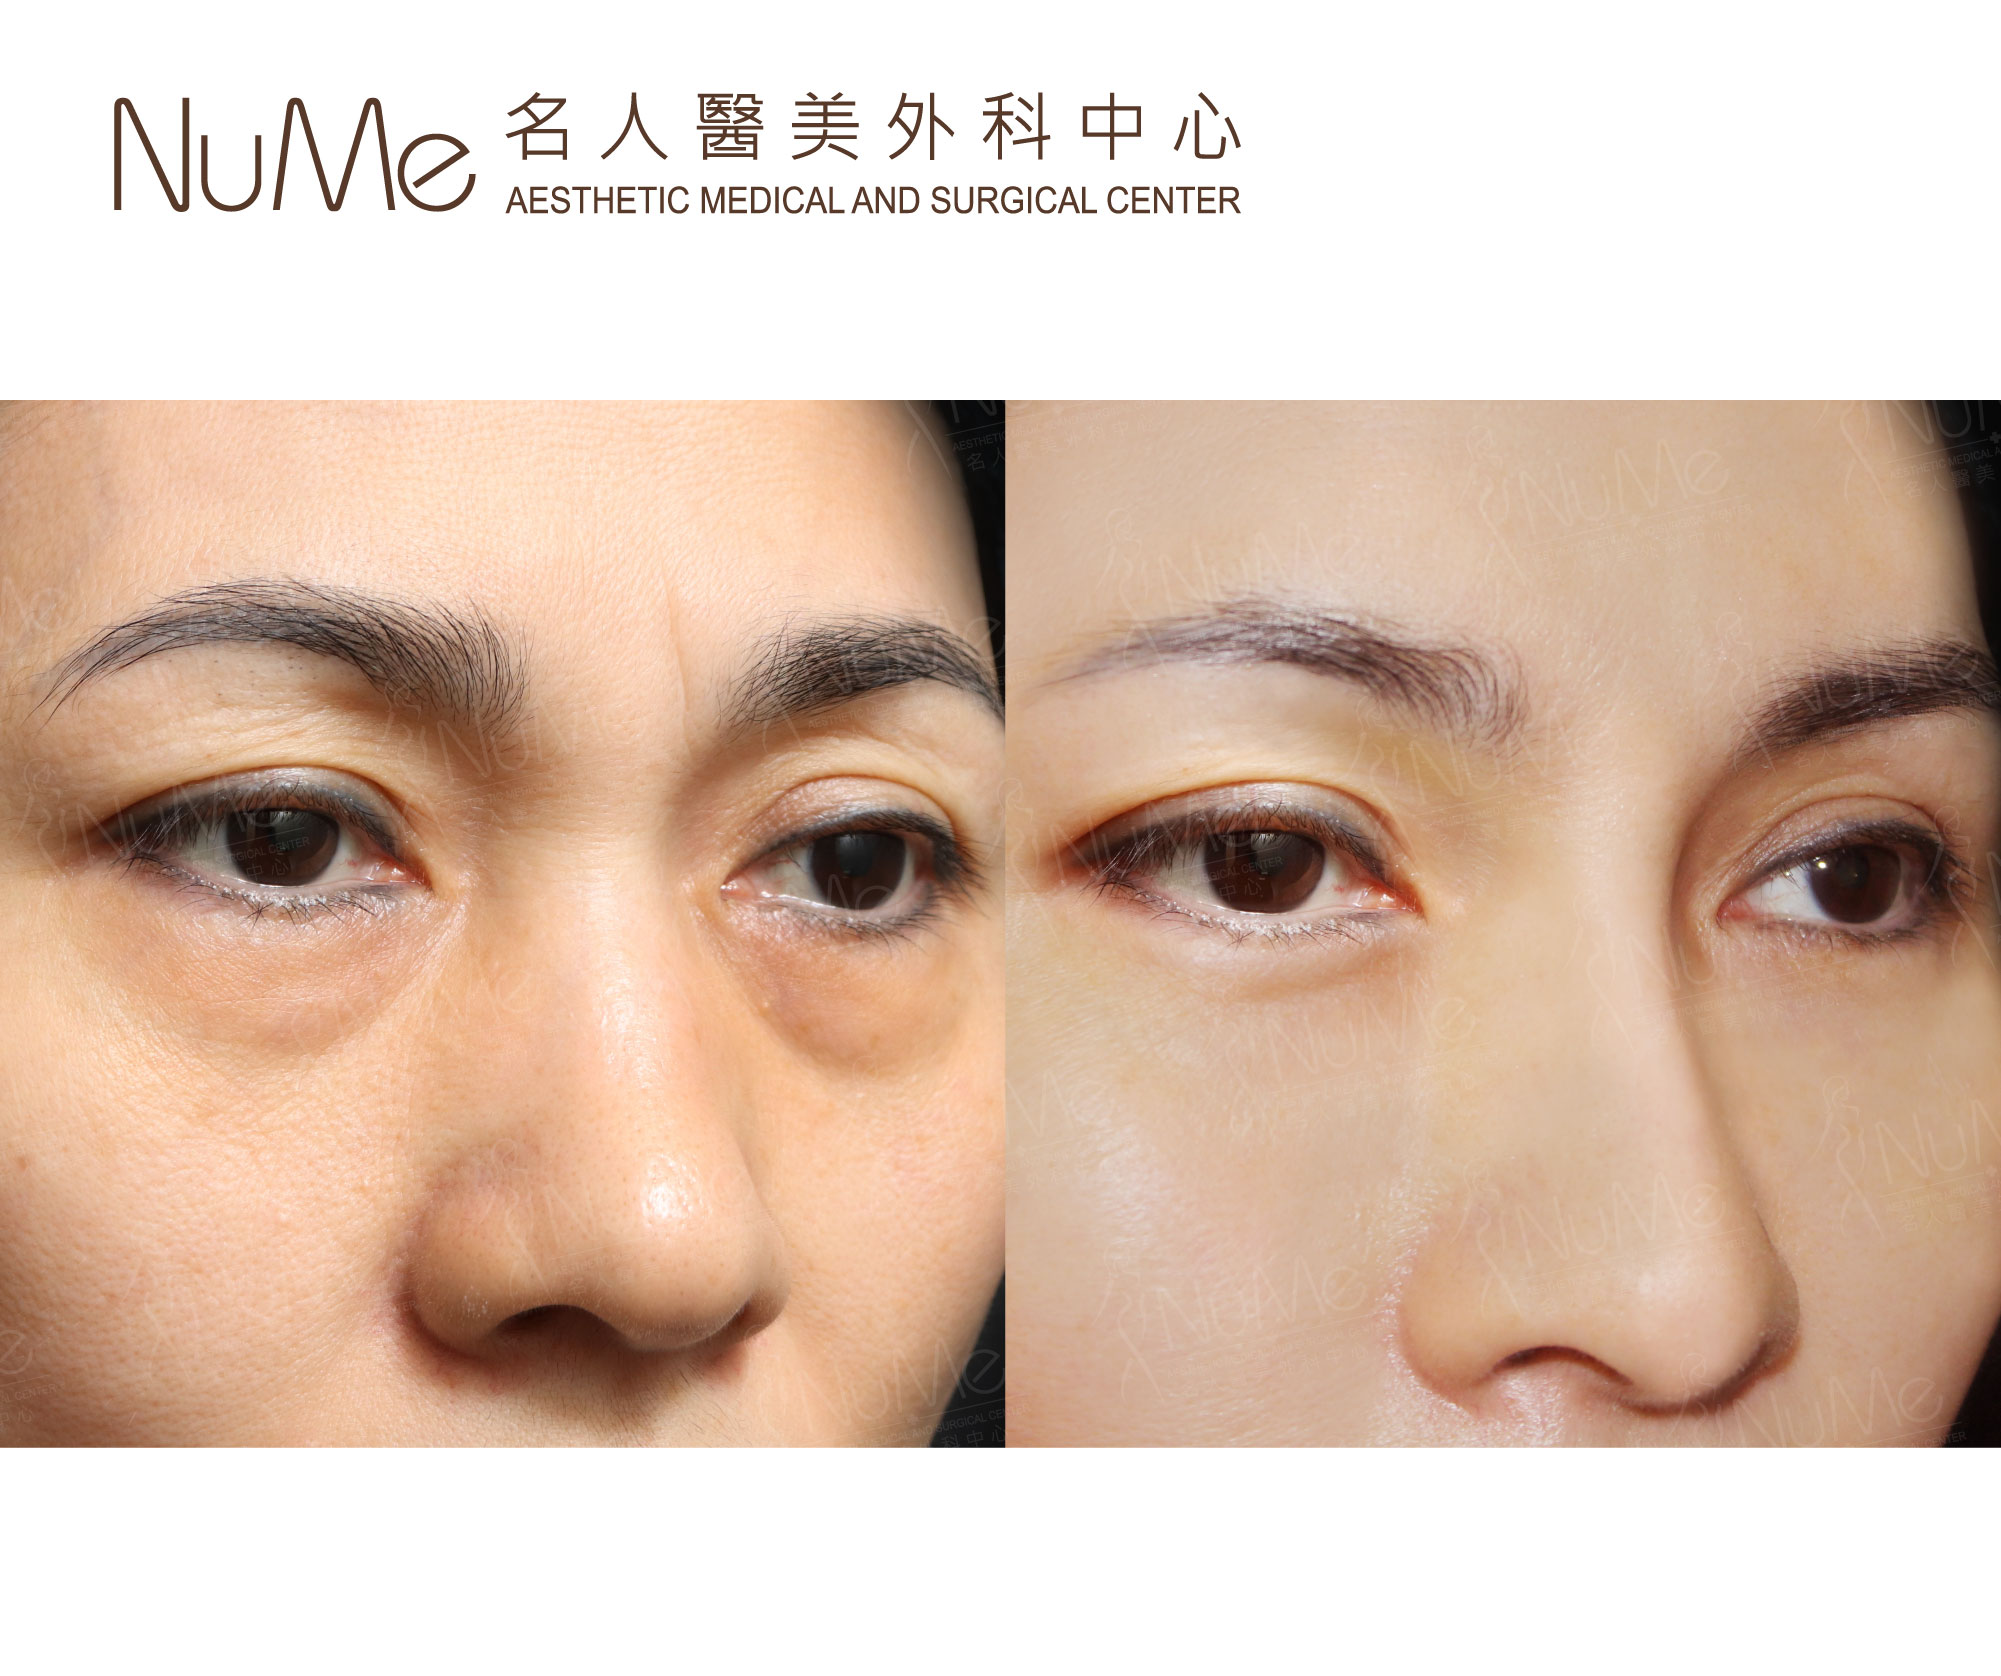 NuMe-Facebook-Before-After-Photos-Comments-素人李嘉欣-10.jpg